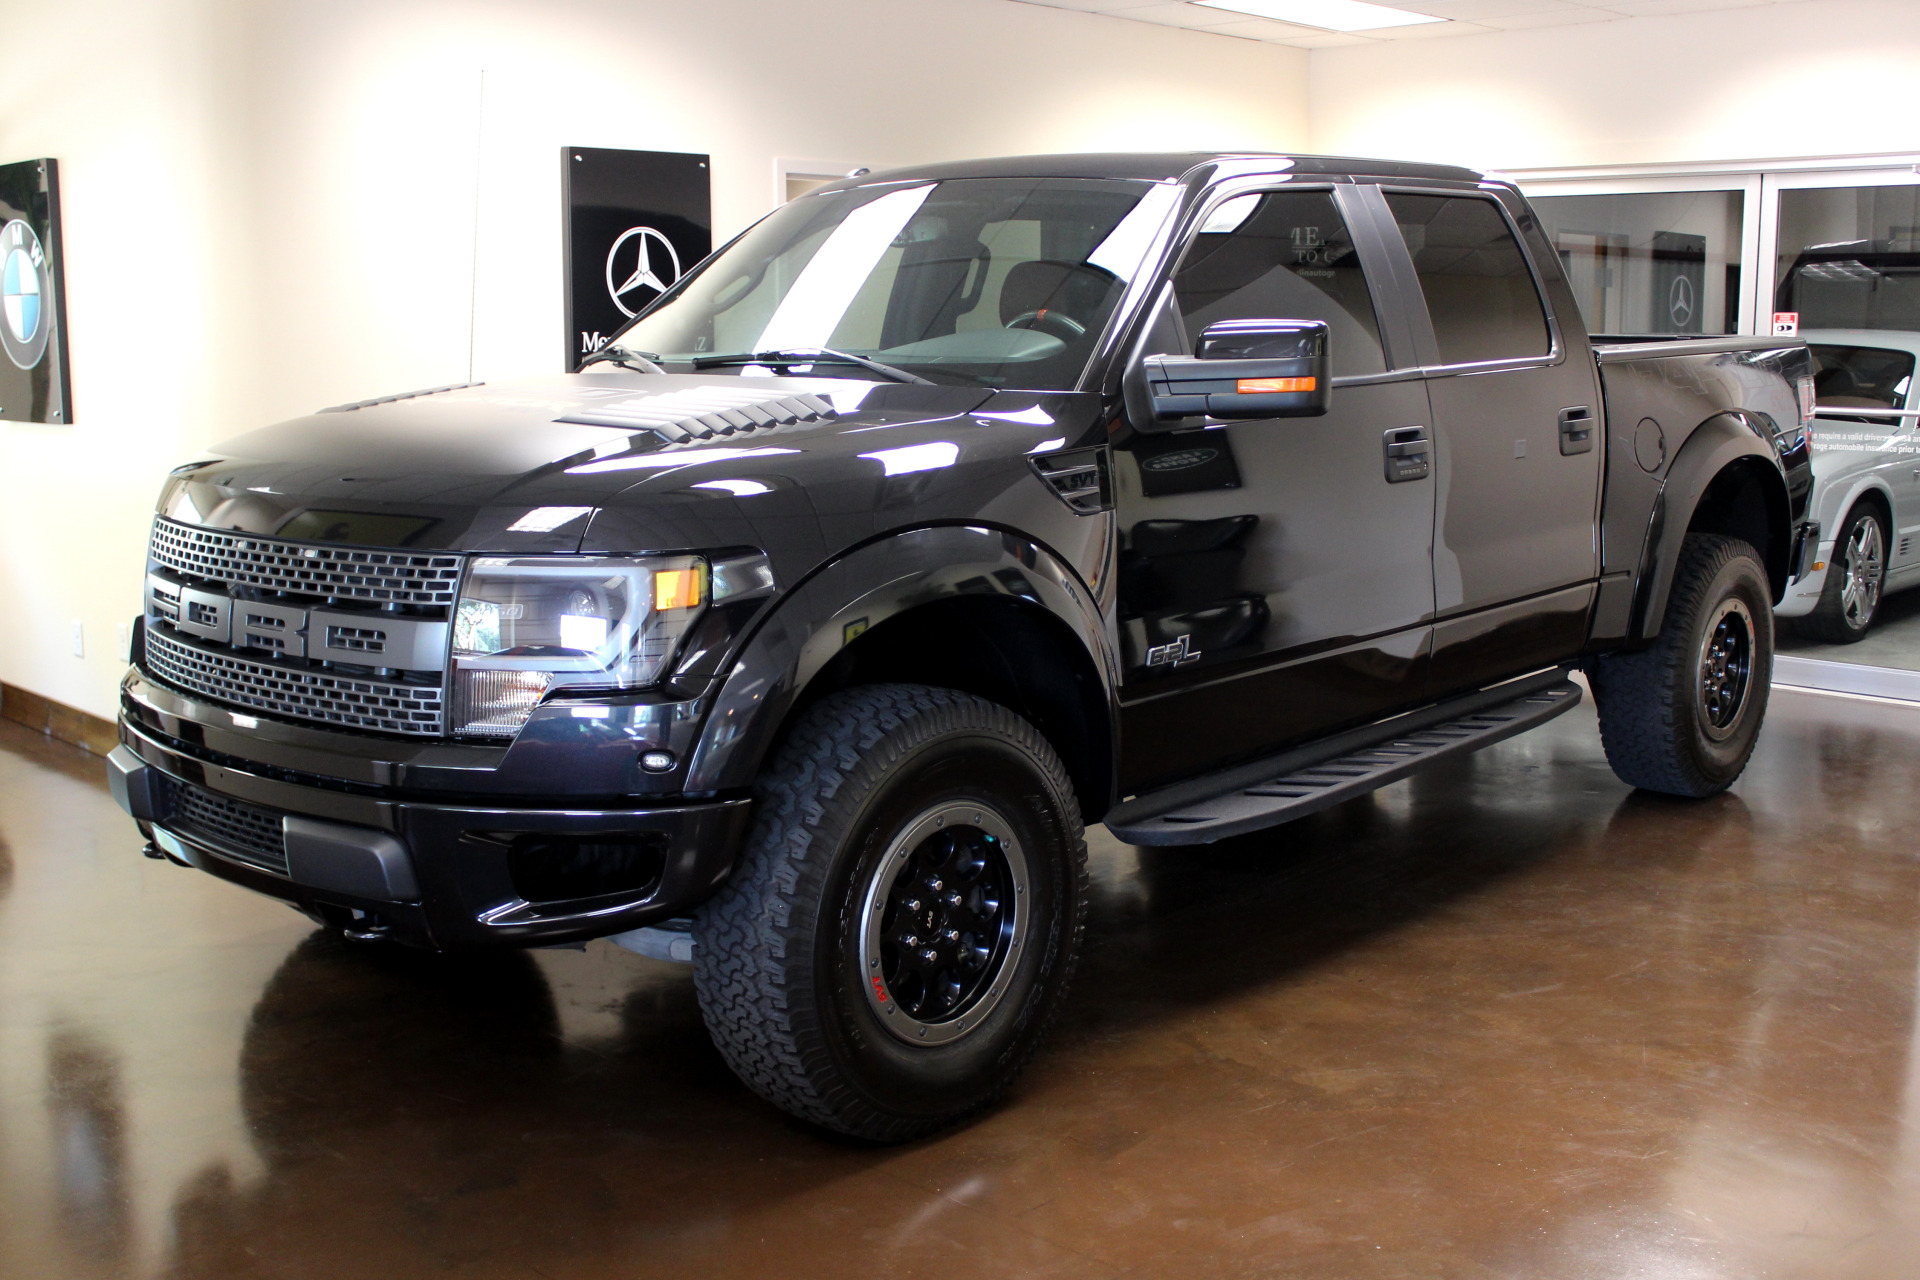 Used 2014 ford f 150 stock p3110 ultra luxury car from merlin auto group for 2014 ford f 150 exterior colors